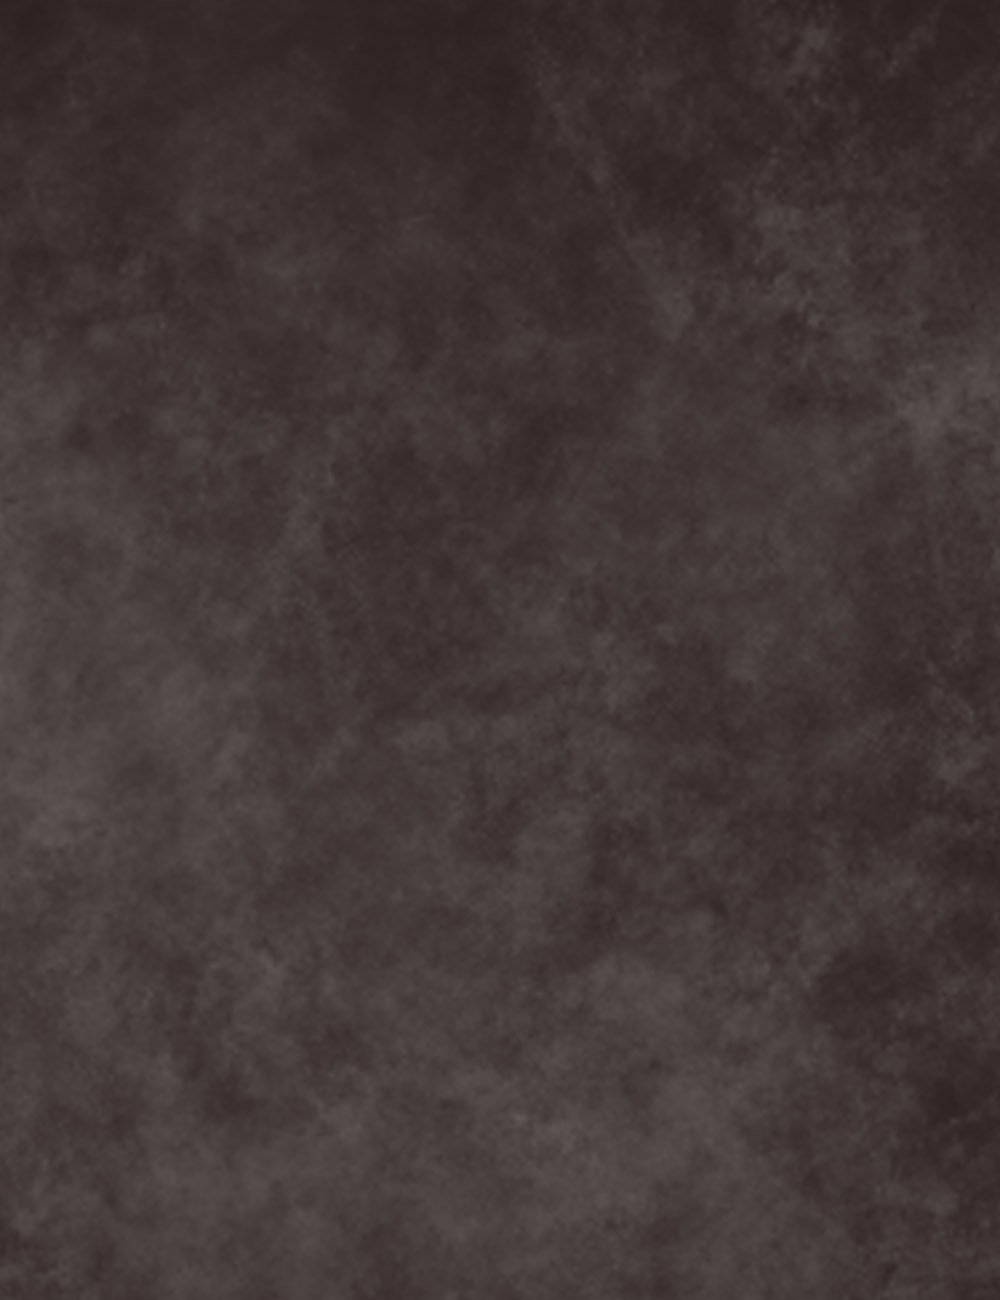 Abstract Dark Rosy Brown Texture Backdrop For Photography - Shop Backdrop